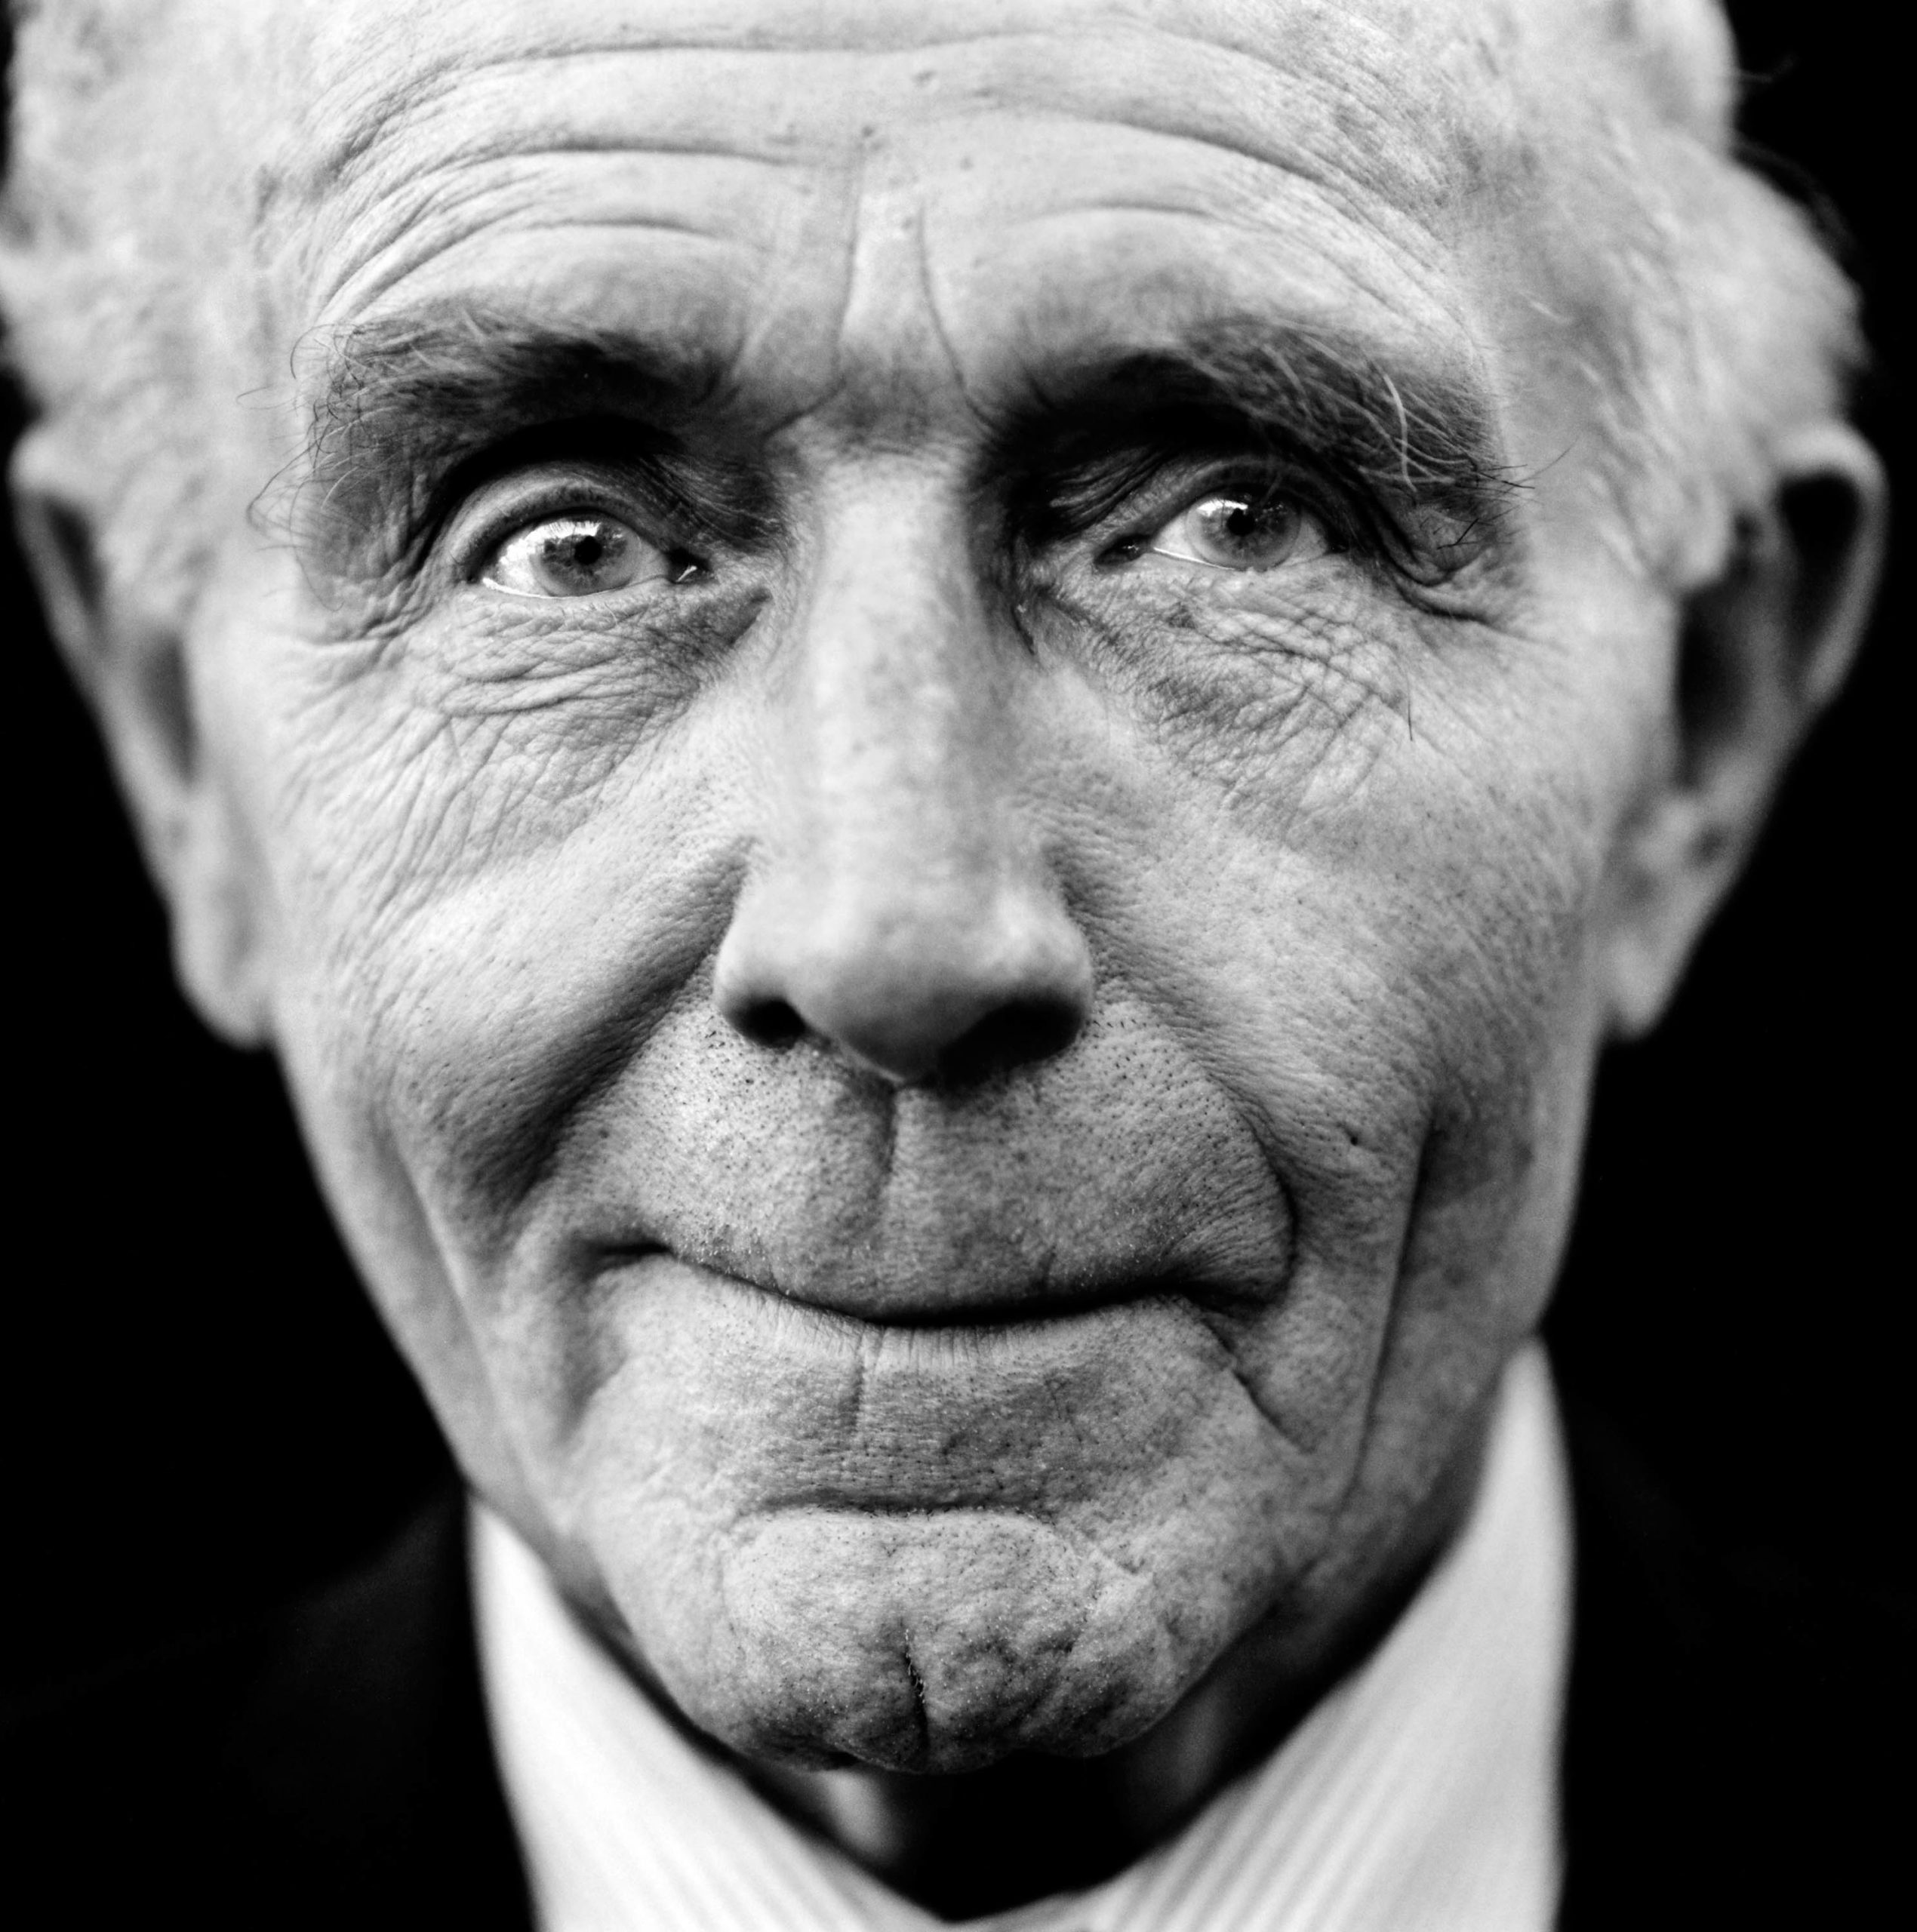 """Vernon Jones (United Kingdom, 1923). Interview outtake: """"I probably killed a couple of dozen Germans during the war, but it's never bothered me. I don't think about it and it's something that I never dream about. That's not very human, is it?"""""""